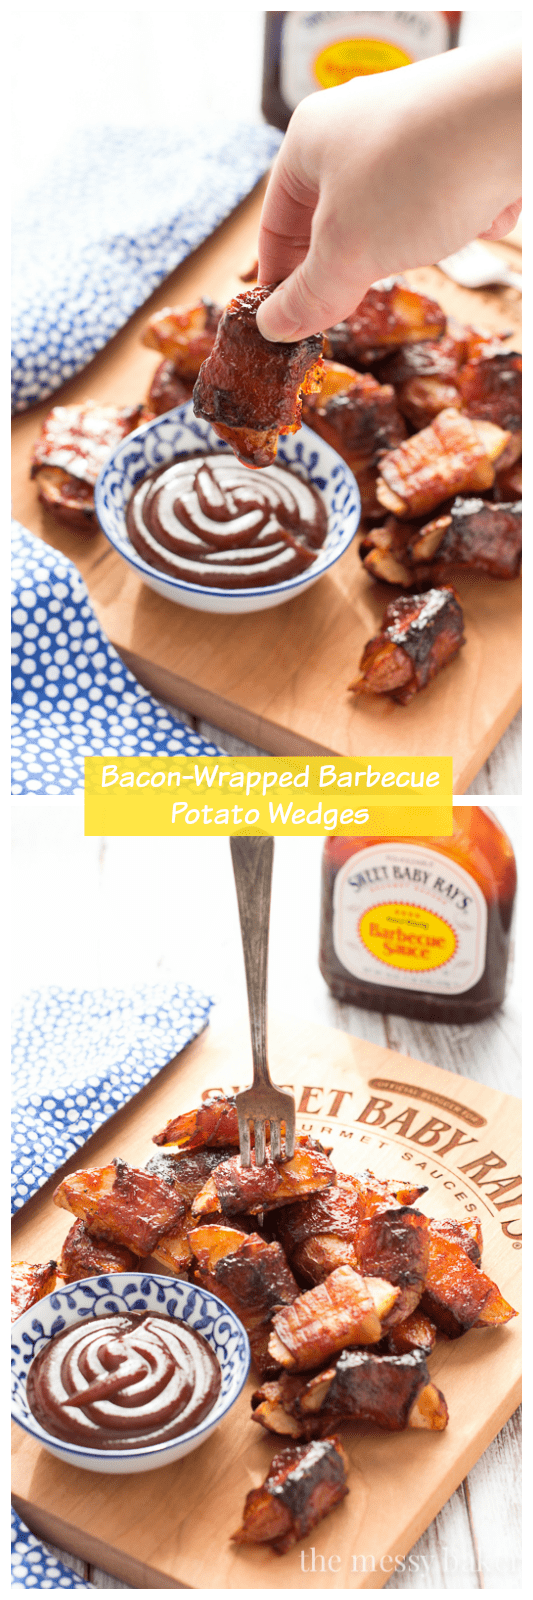 These crispy potato wedges wrapped in smoky bacon and glazed with barbecue sauce make the perfect appetizer for football, the holidays, and parties.   www.themessybakerblog.com